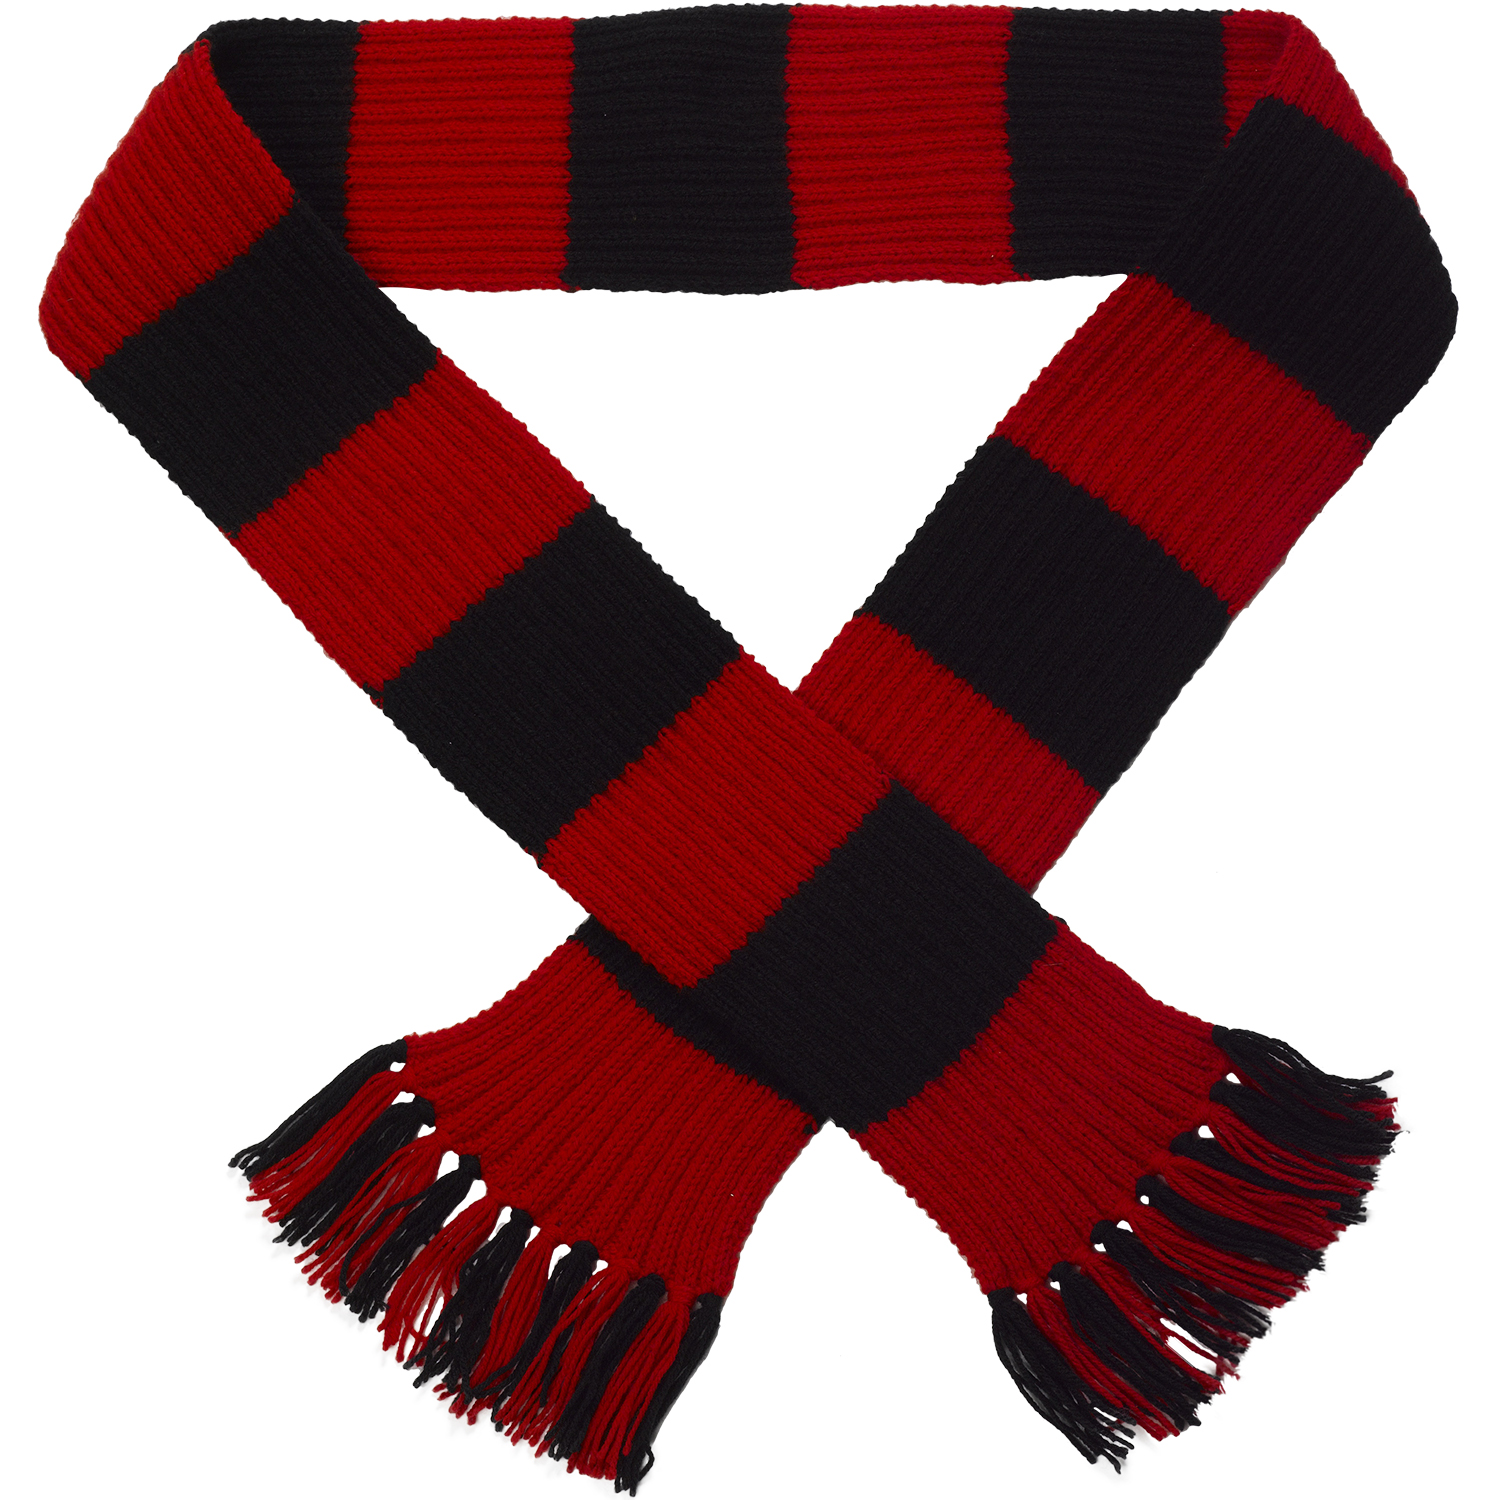 Knit Striped Scarf Pattern : Rugby Football Striped Scarf Knitting Pattern & Wool Sports Team Craft Ho...